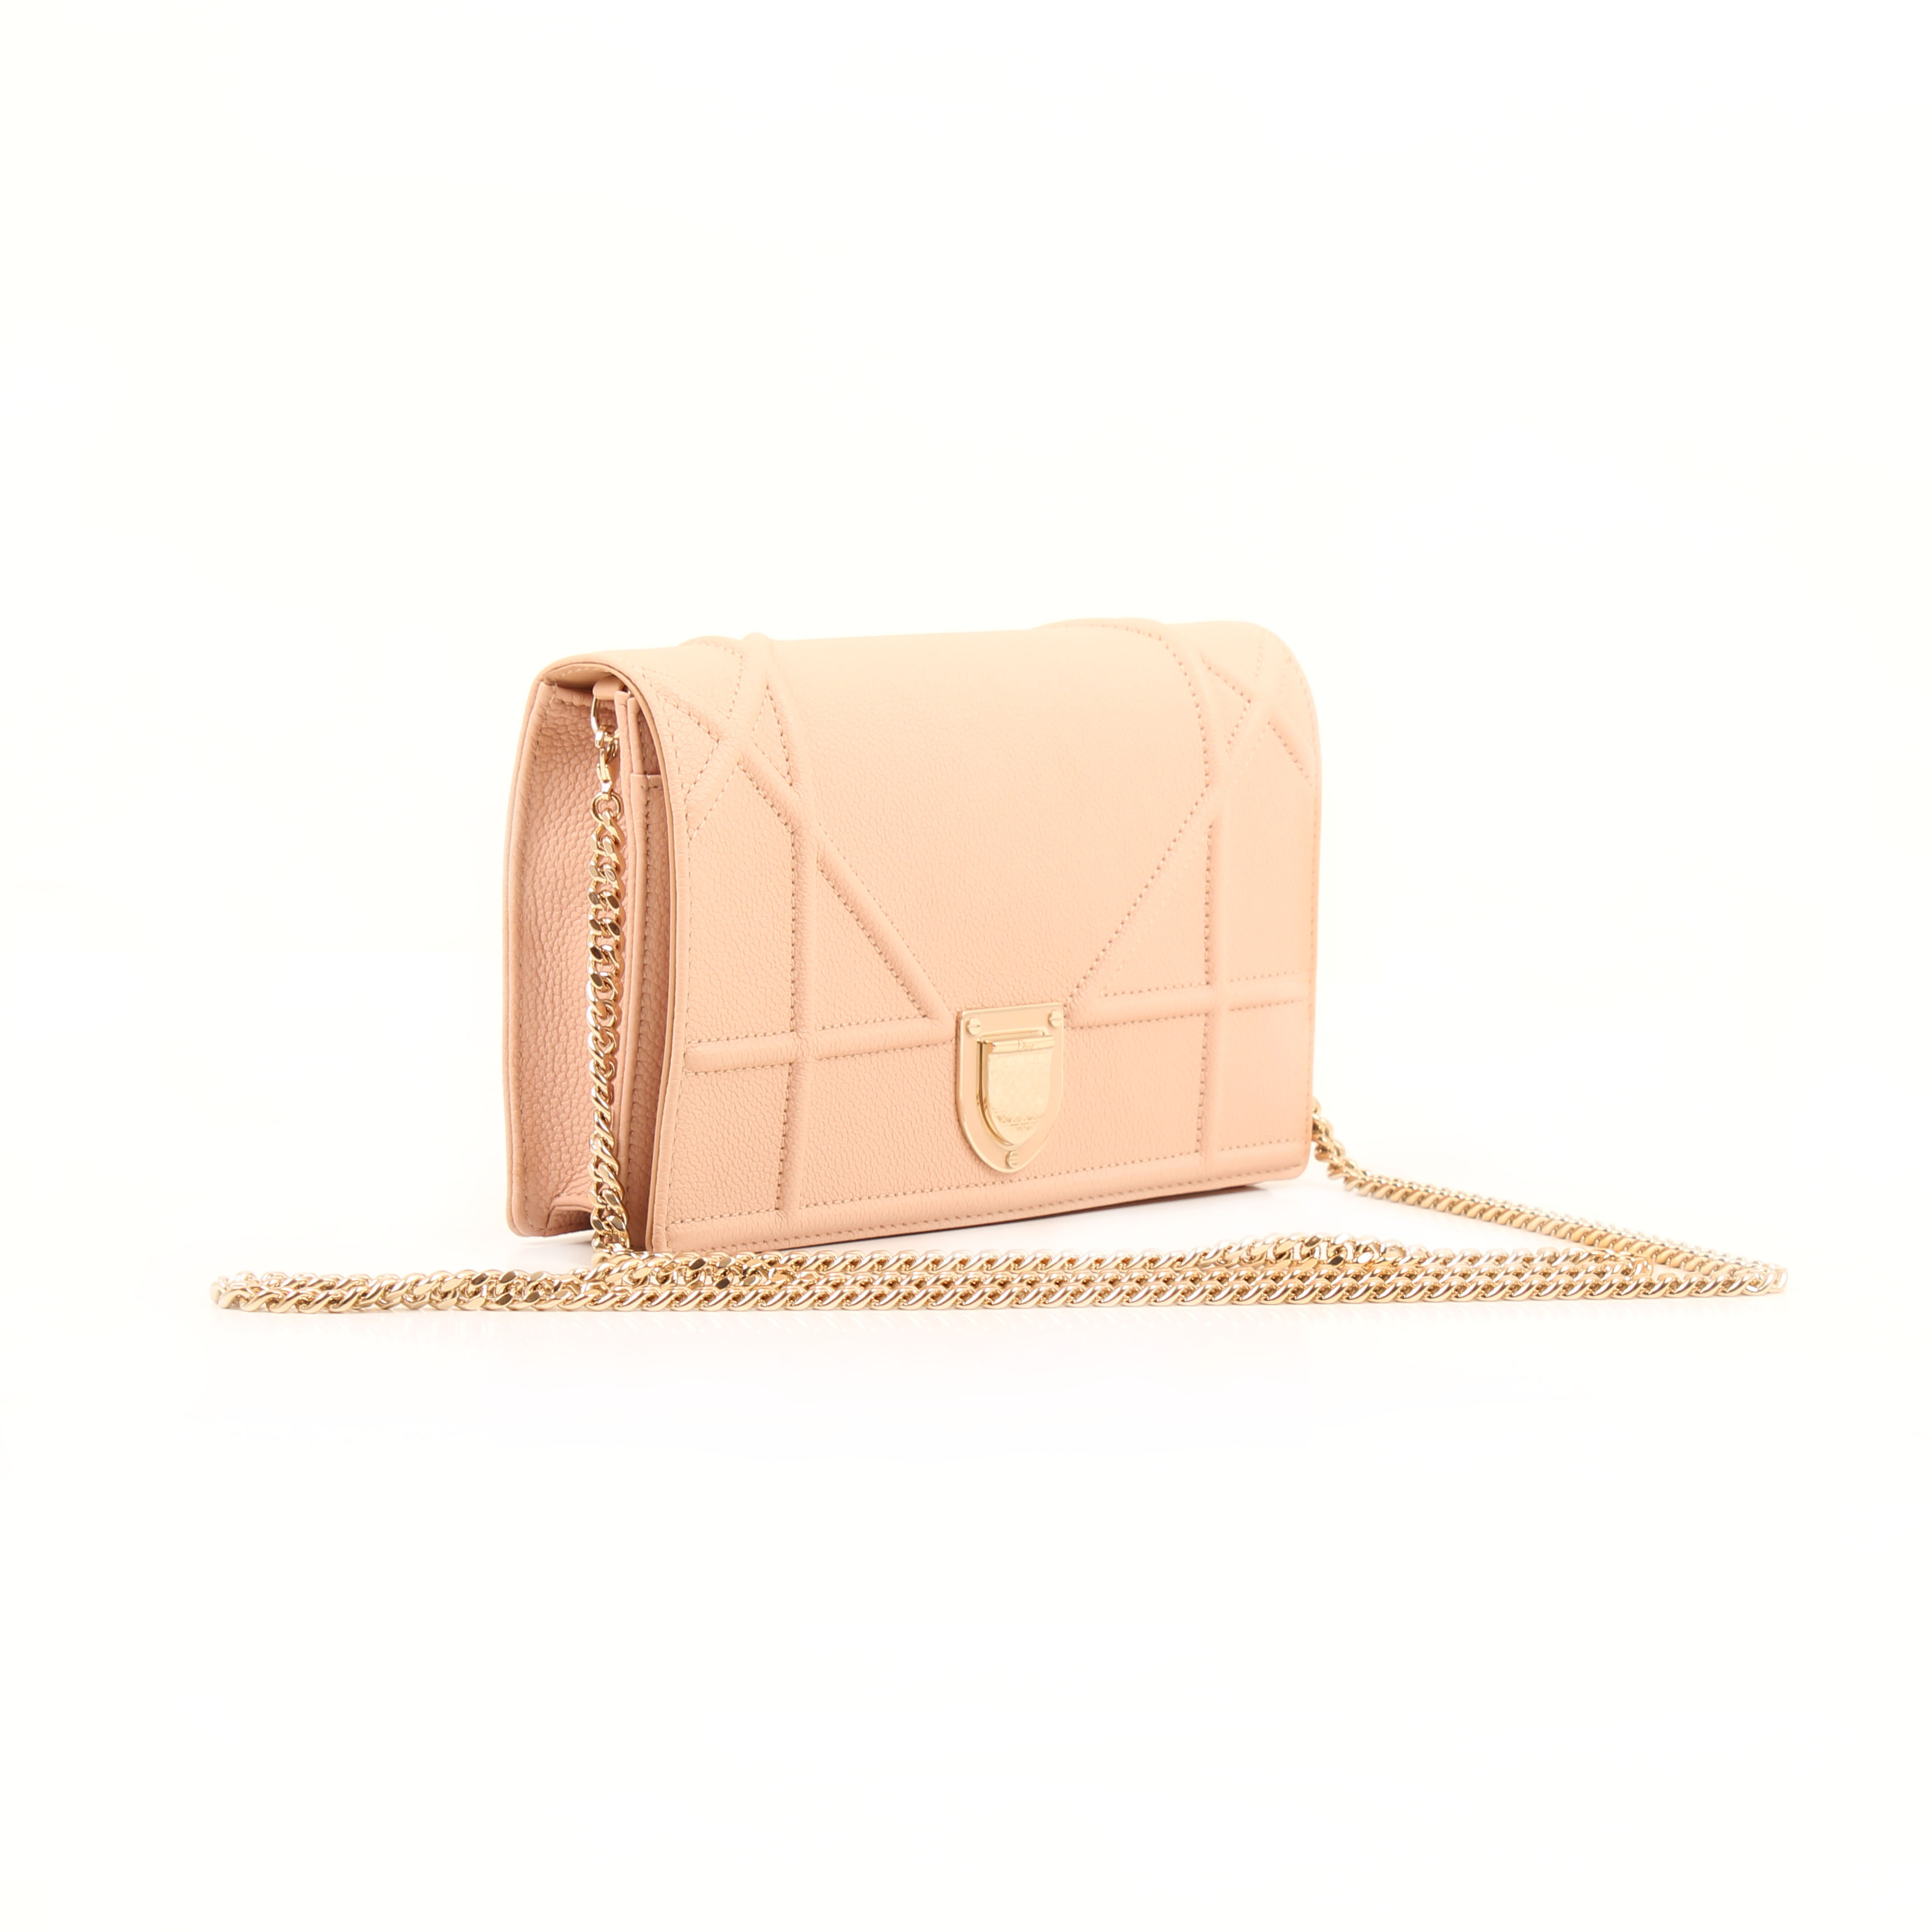 wallet on chain dior diorama pouch rosa nude general